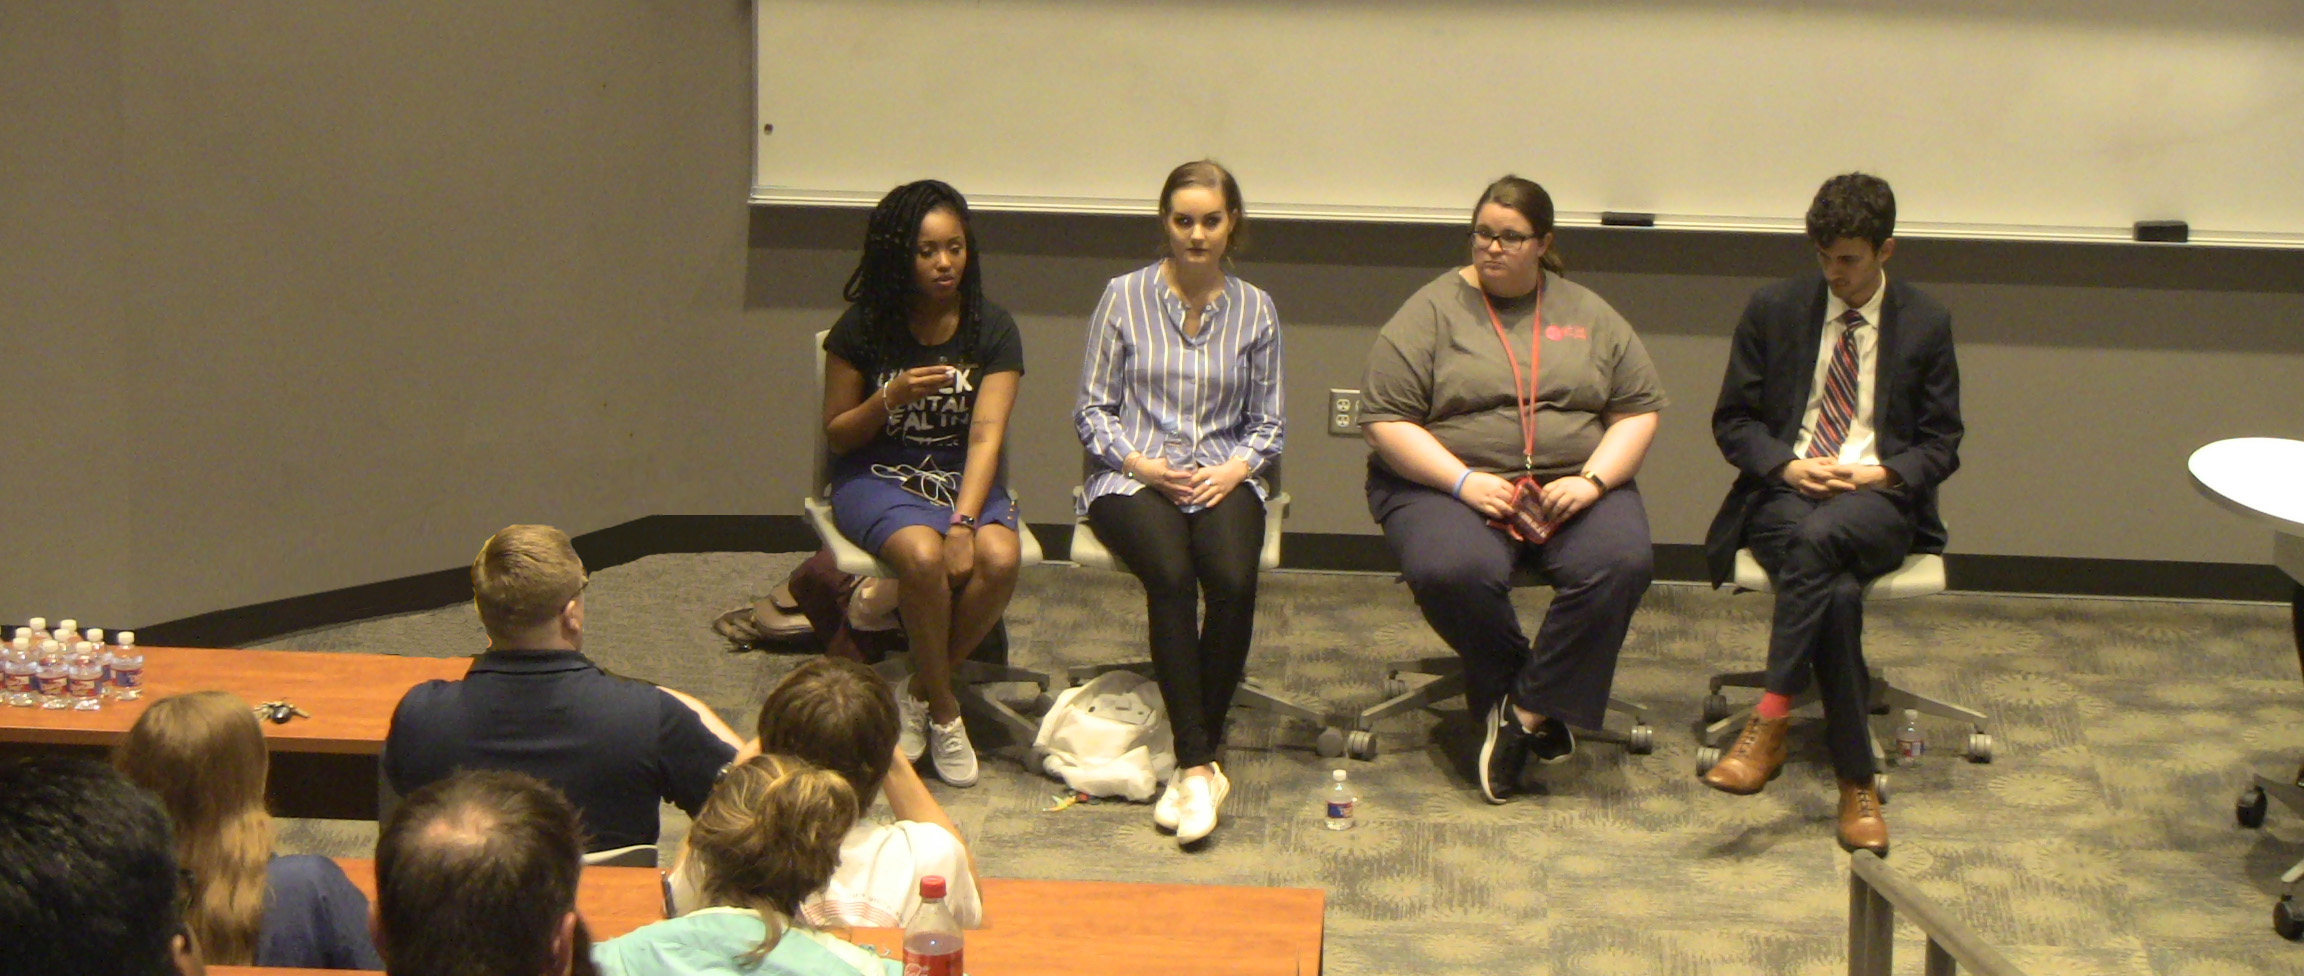 2019 Student Panel Picture 2